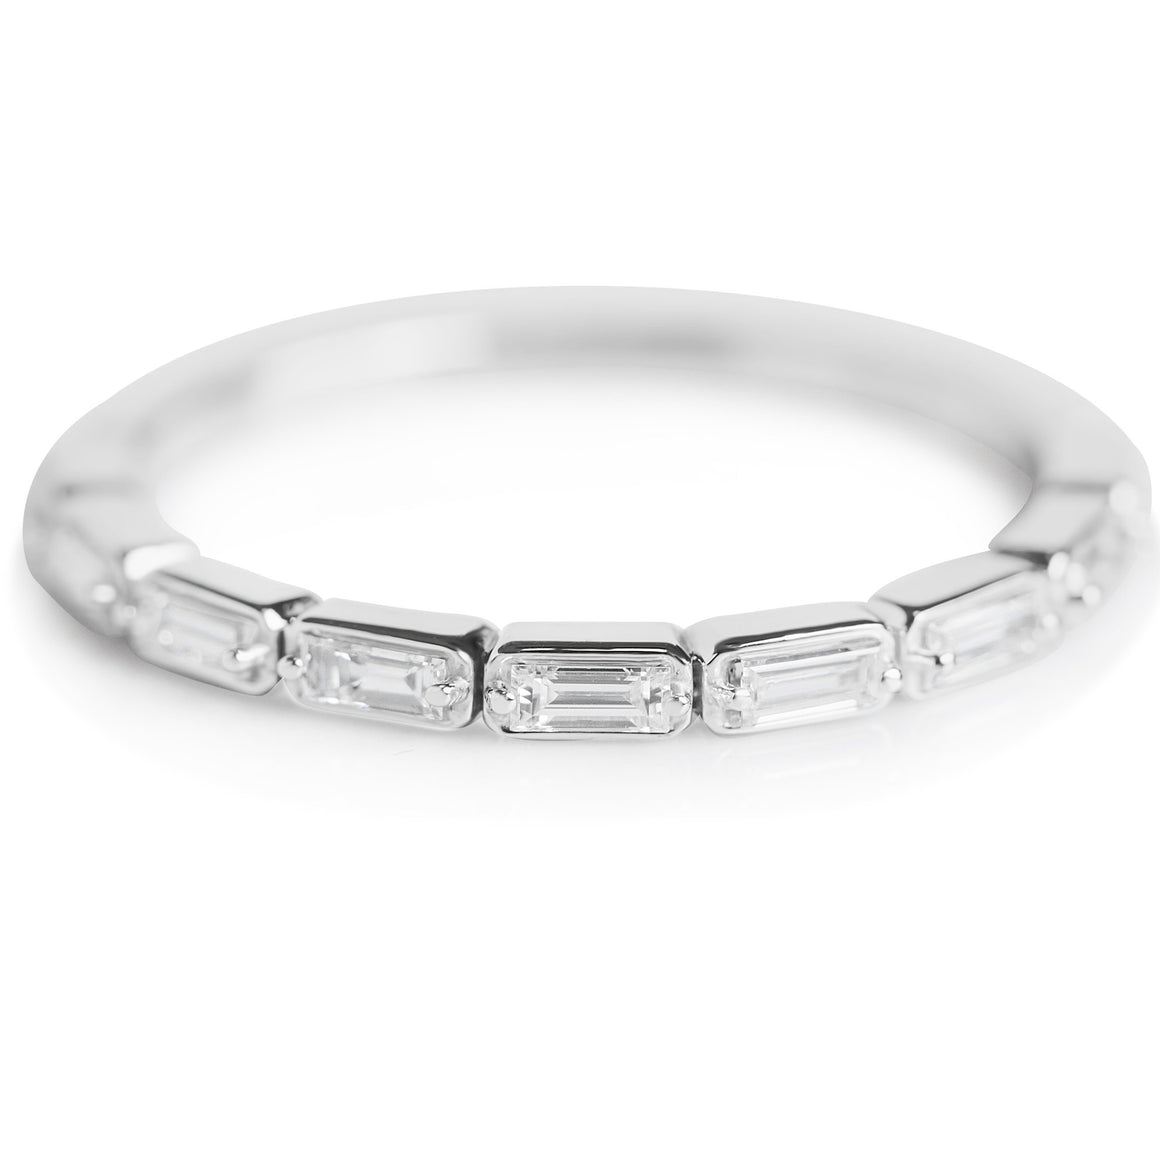 BAGUETTE DIAMOND WEDDING BAND OR STACK RING WITH WHITE GOLD BAND